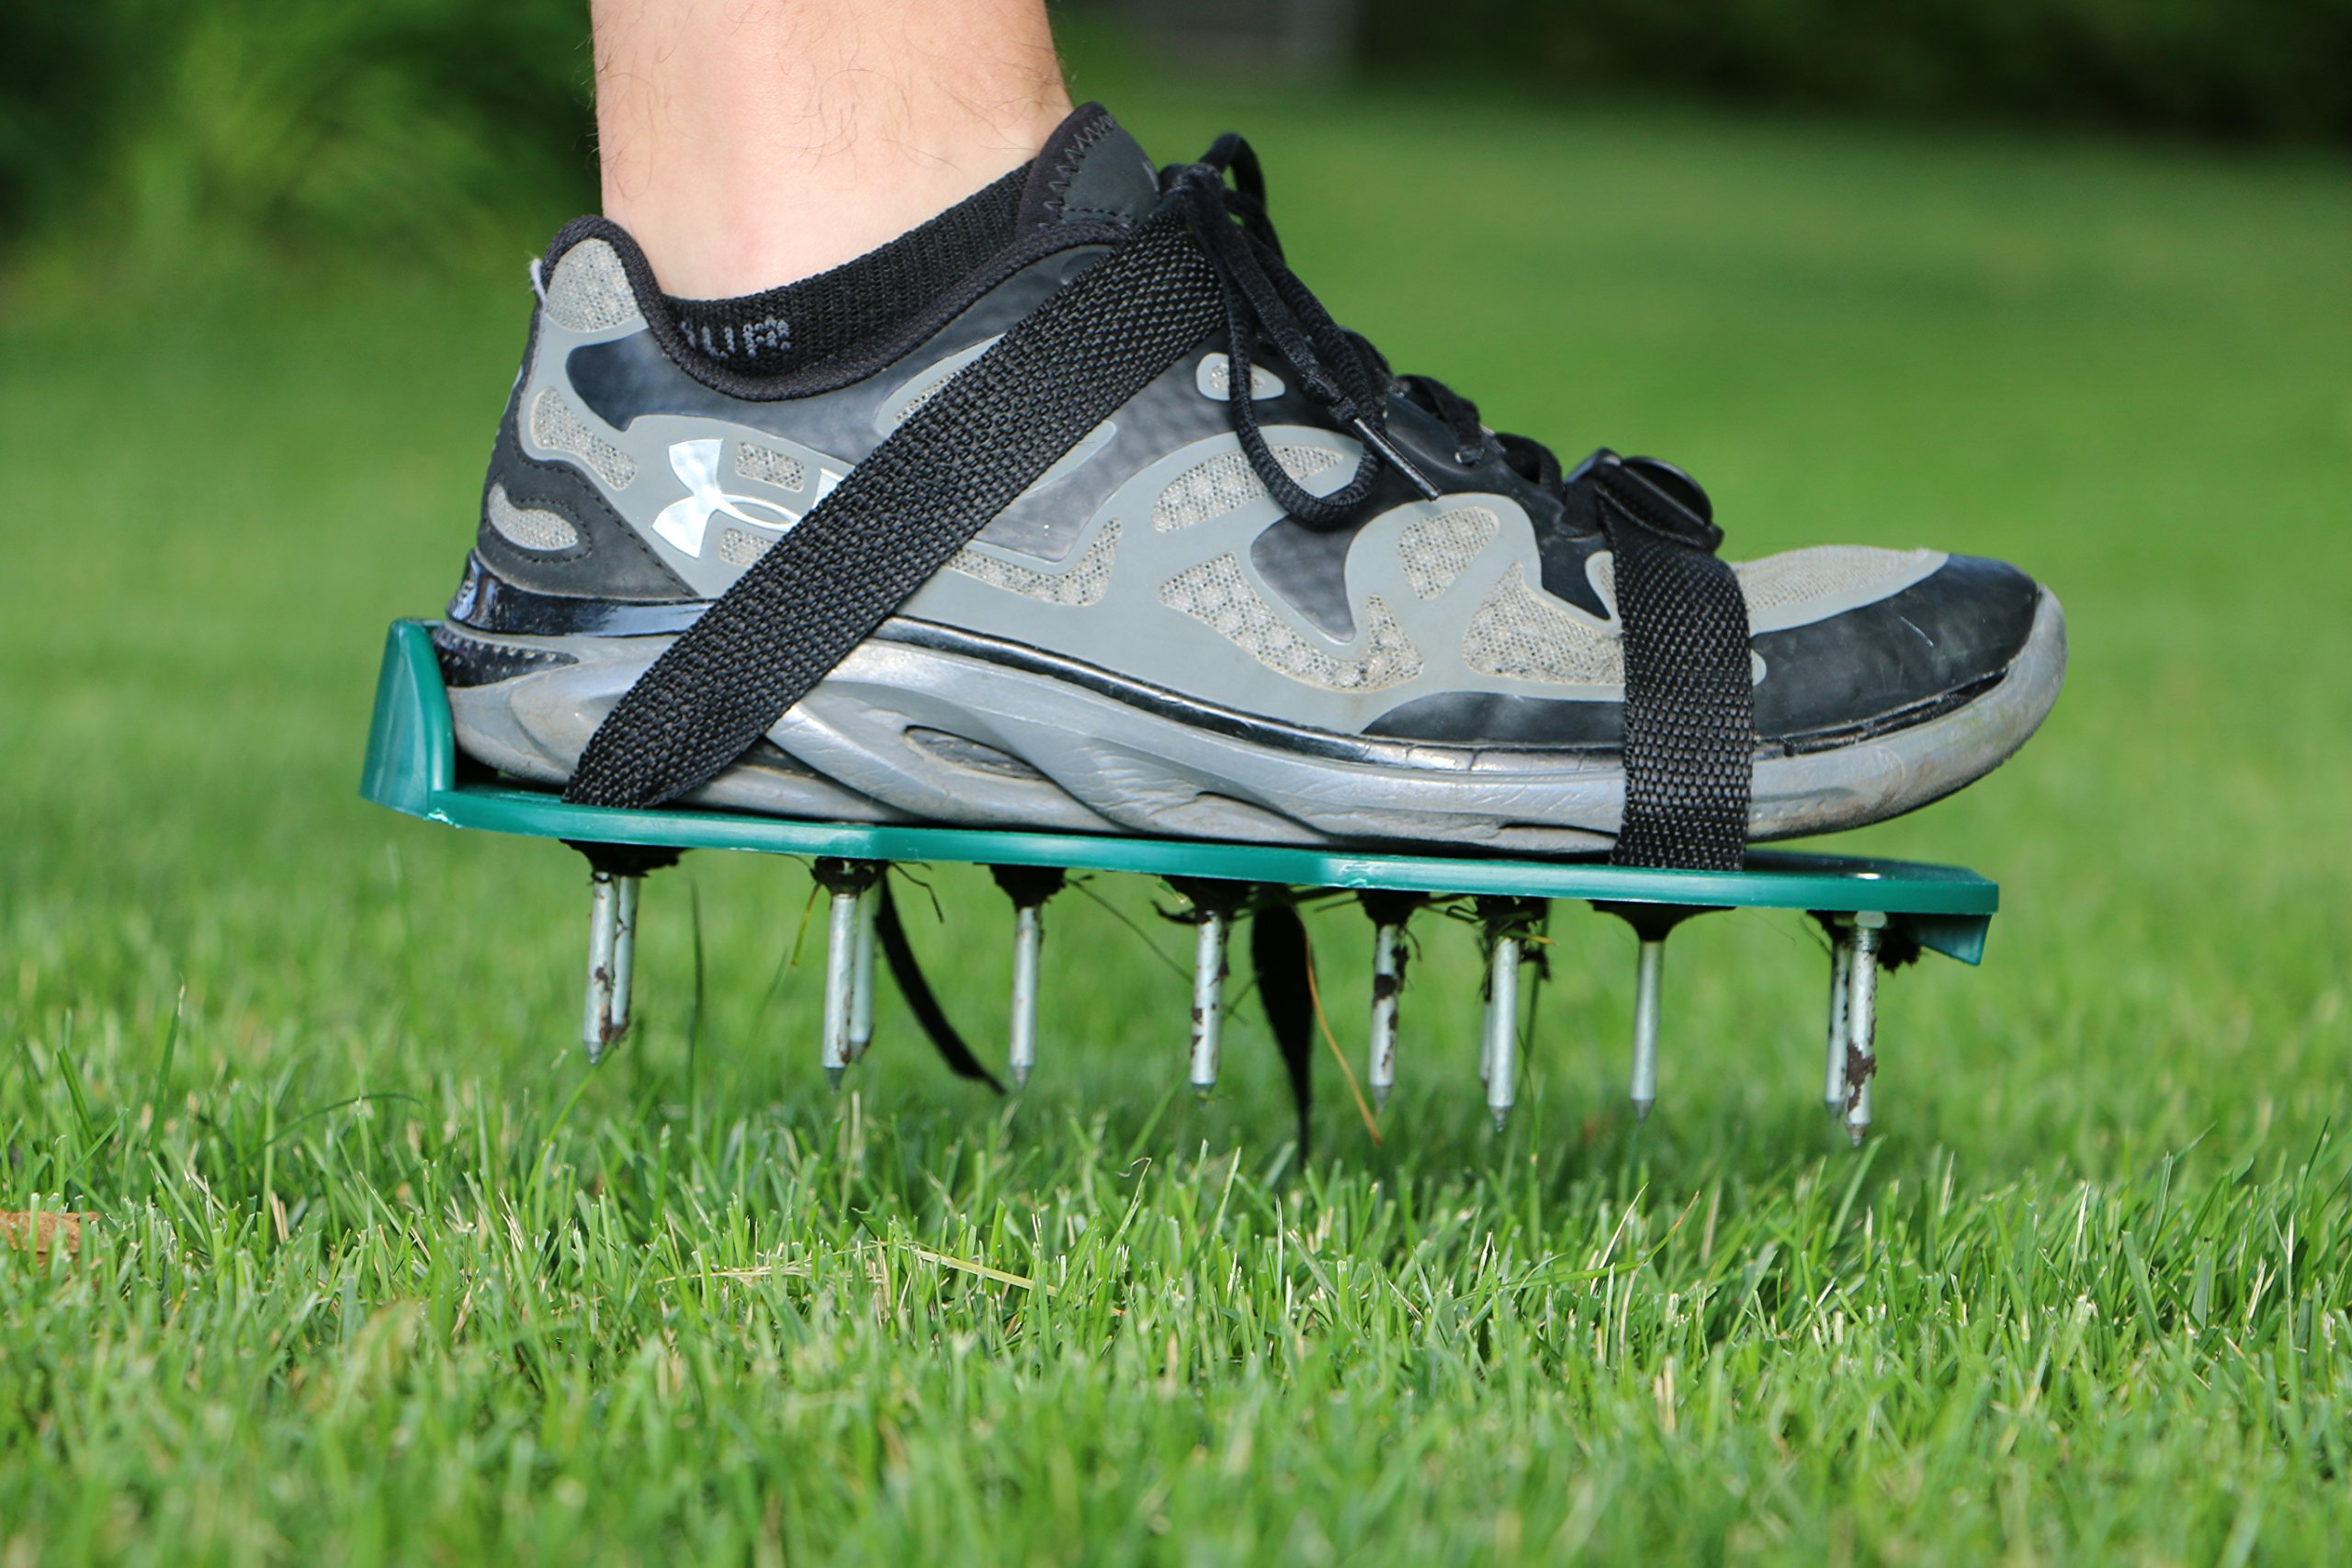 Get Quotations · Lawn Aerator: Strong Lawn Spikes/ Lawn Aerator Shoes To  Quickly Open Up The Soil